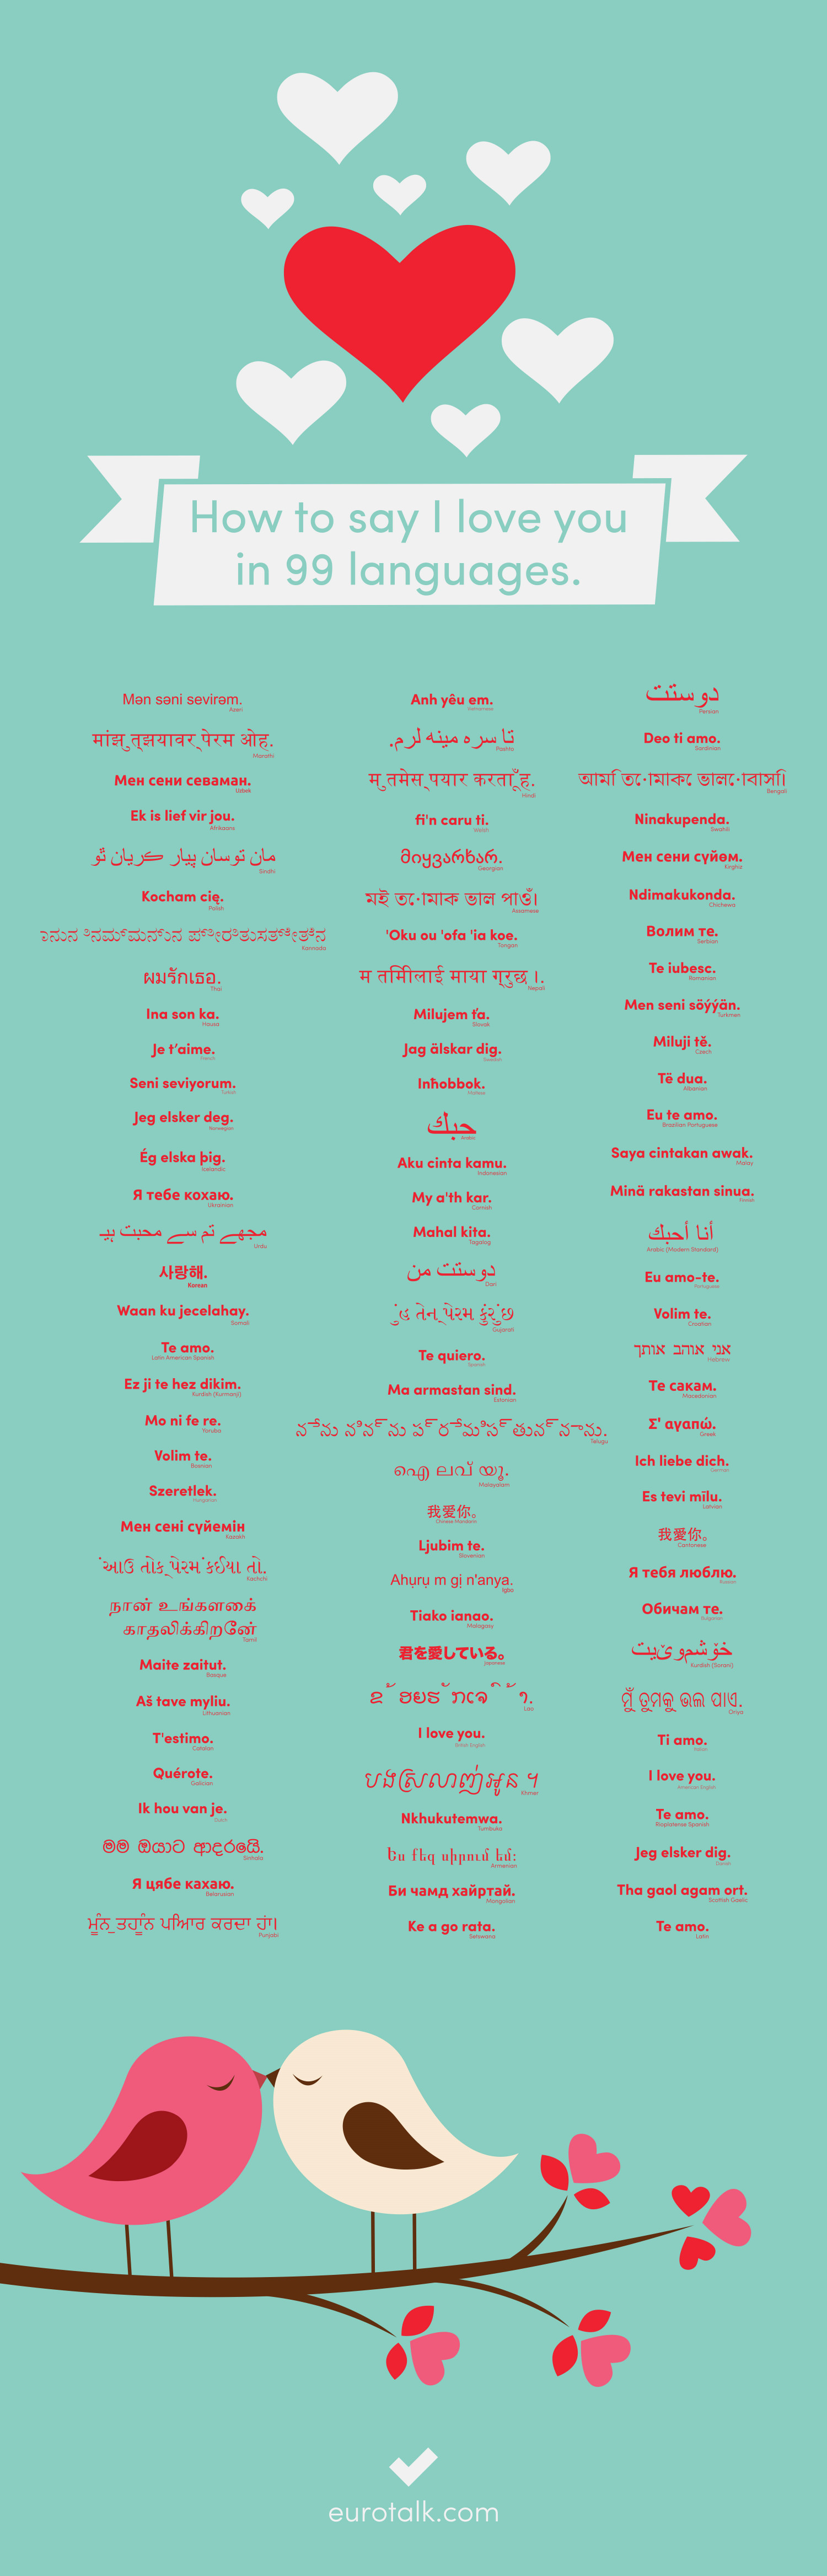 How To Say I Love You In 99 Languages Infographic